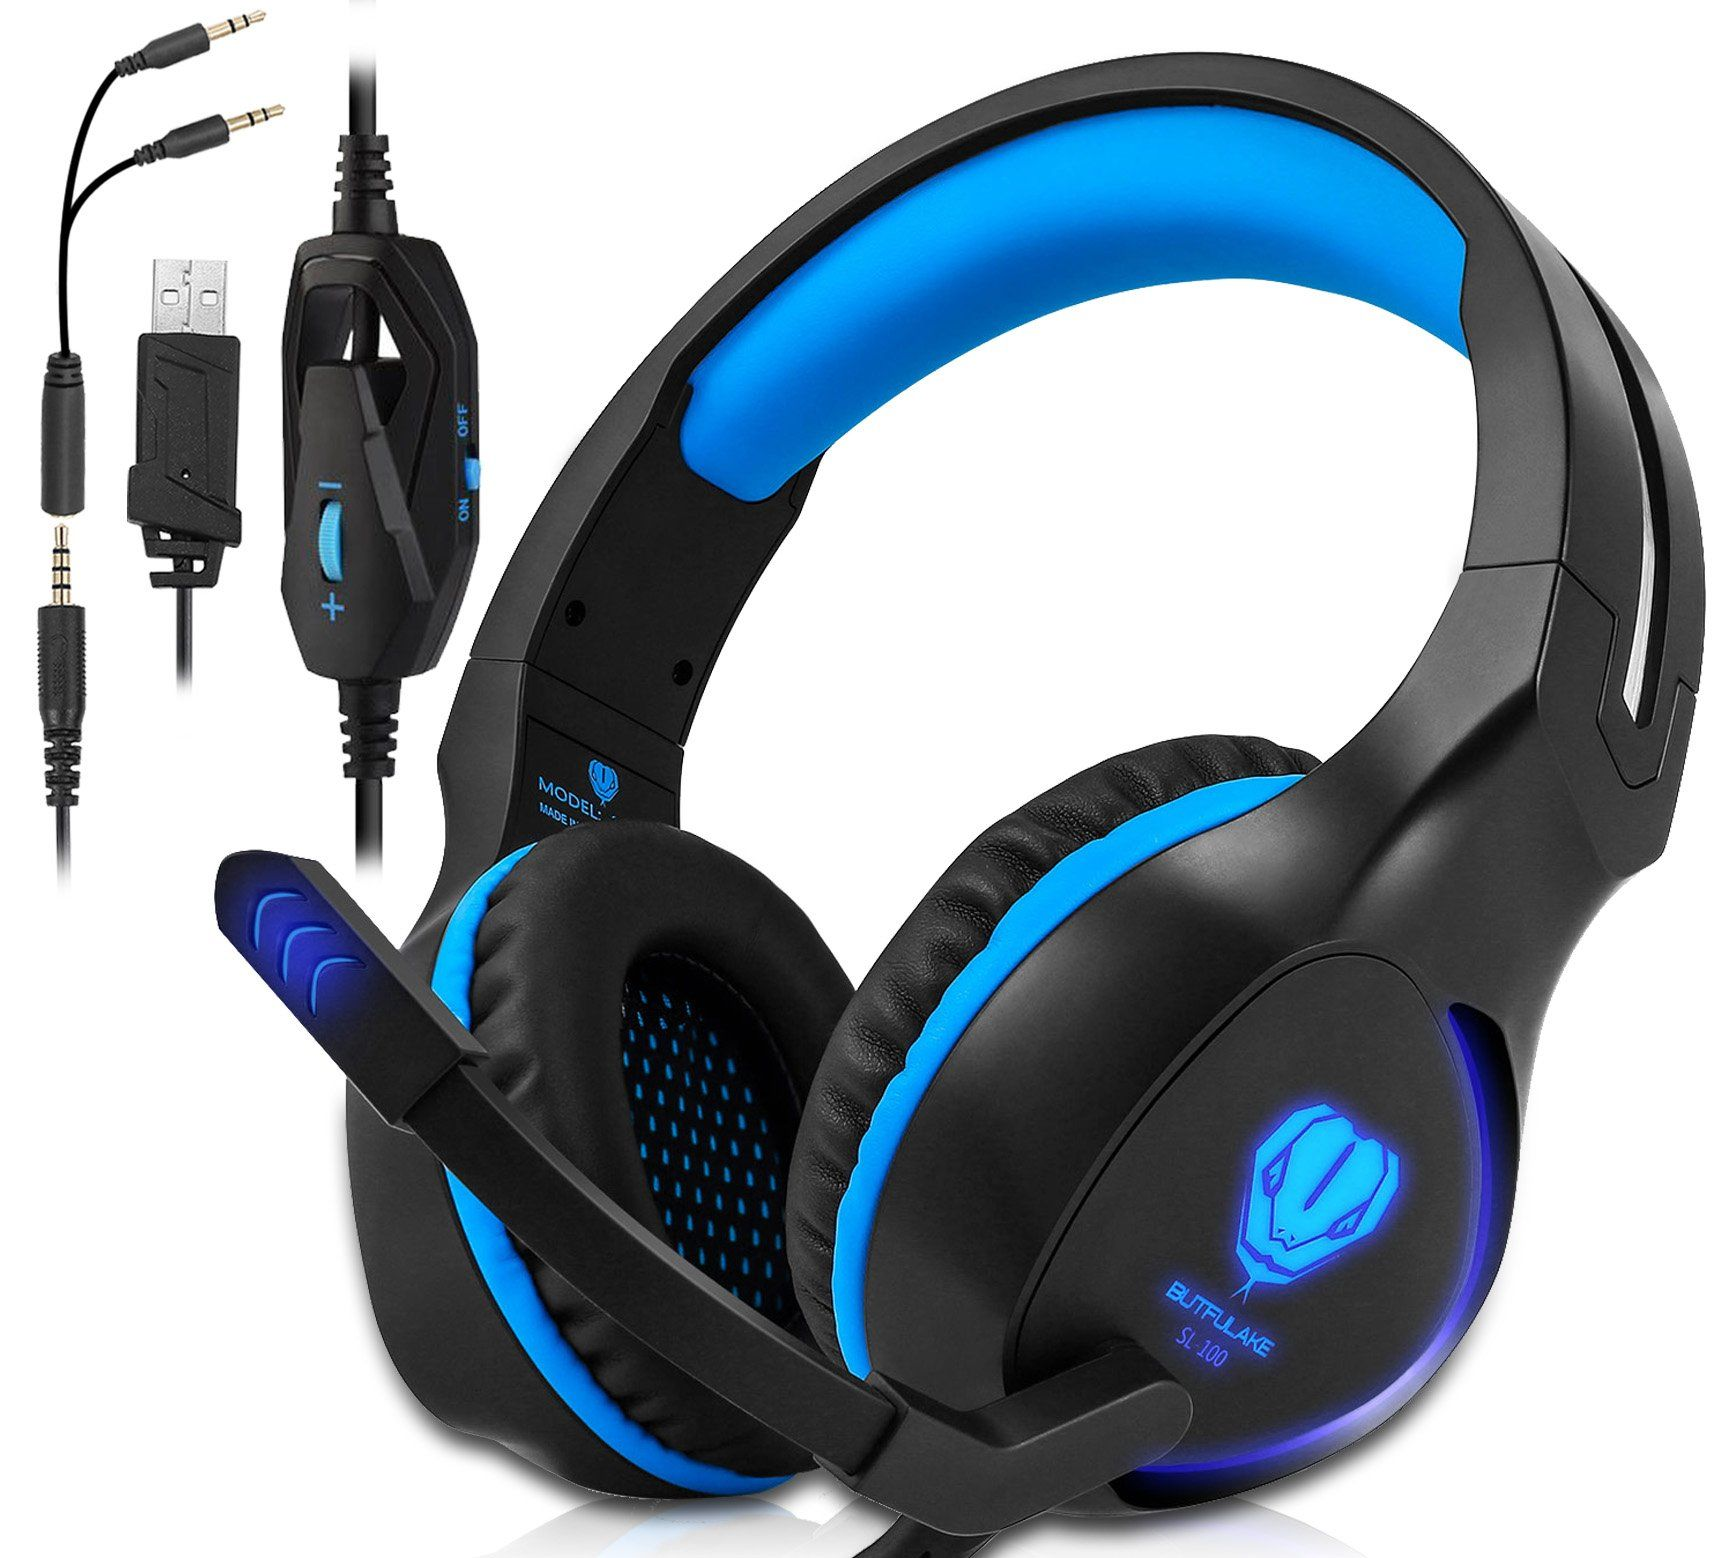 Xbox One Ps4 Gaming Headset Headphones With Mic And Led Light For Laptop Computer Stereo Gamer Headphone Gaming Headset Ps4 Gaming Headset Gaming Headphones